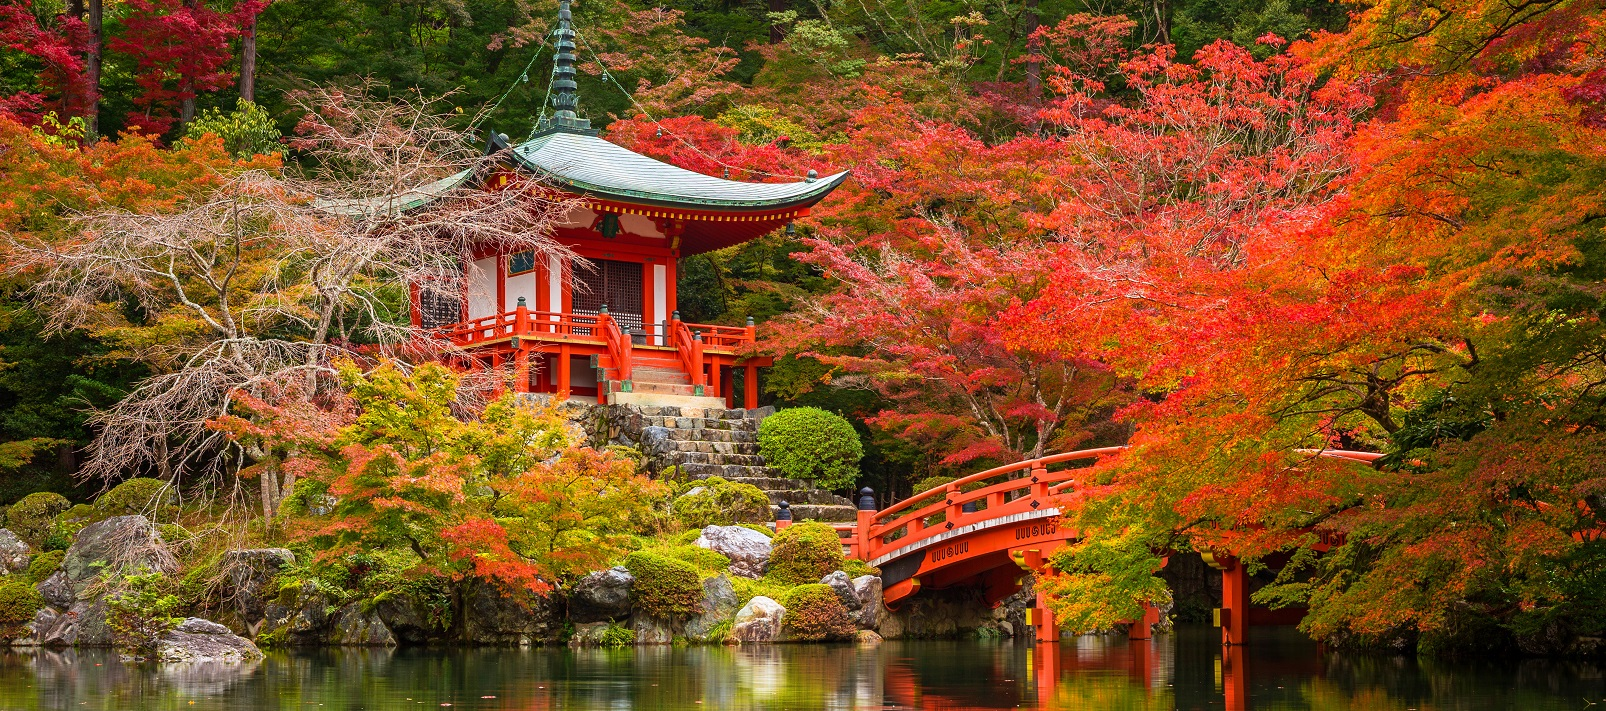 Just Japan - An Introduction | Tours & Trips with ENCHANTING